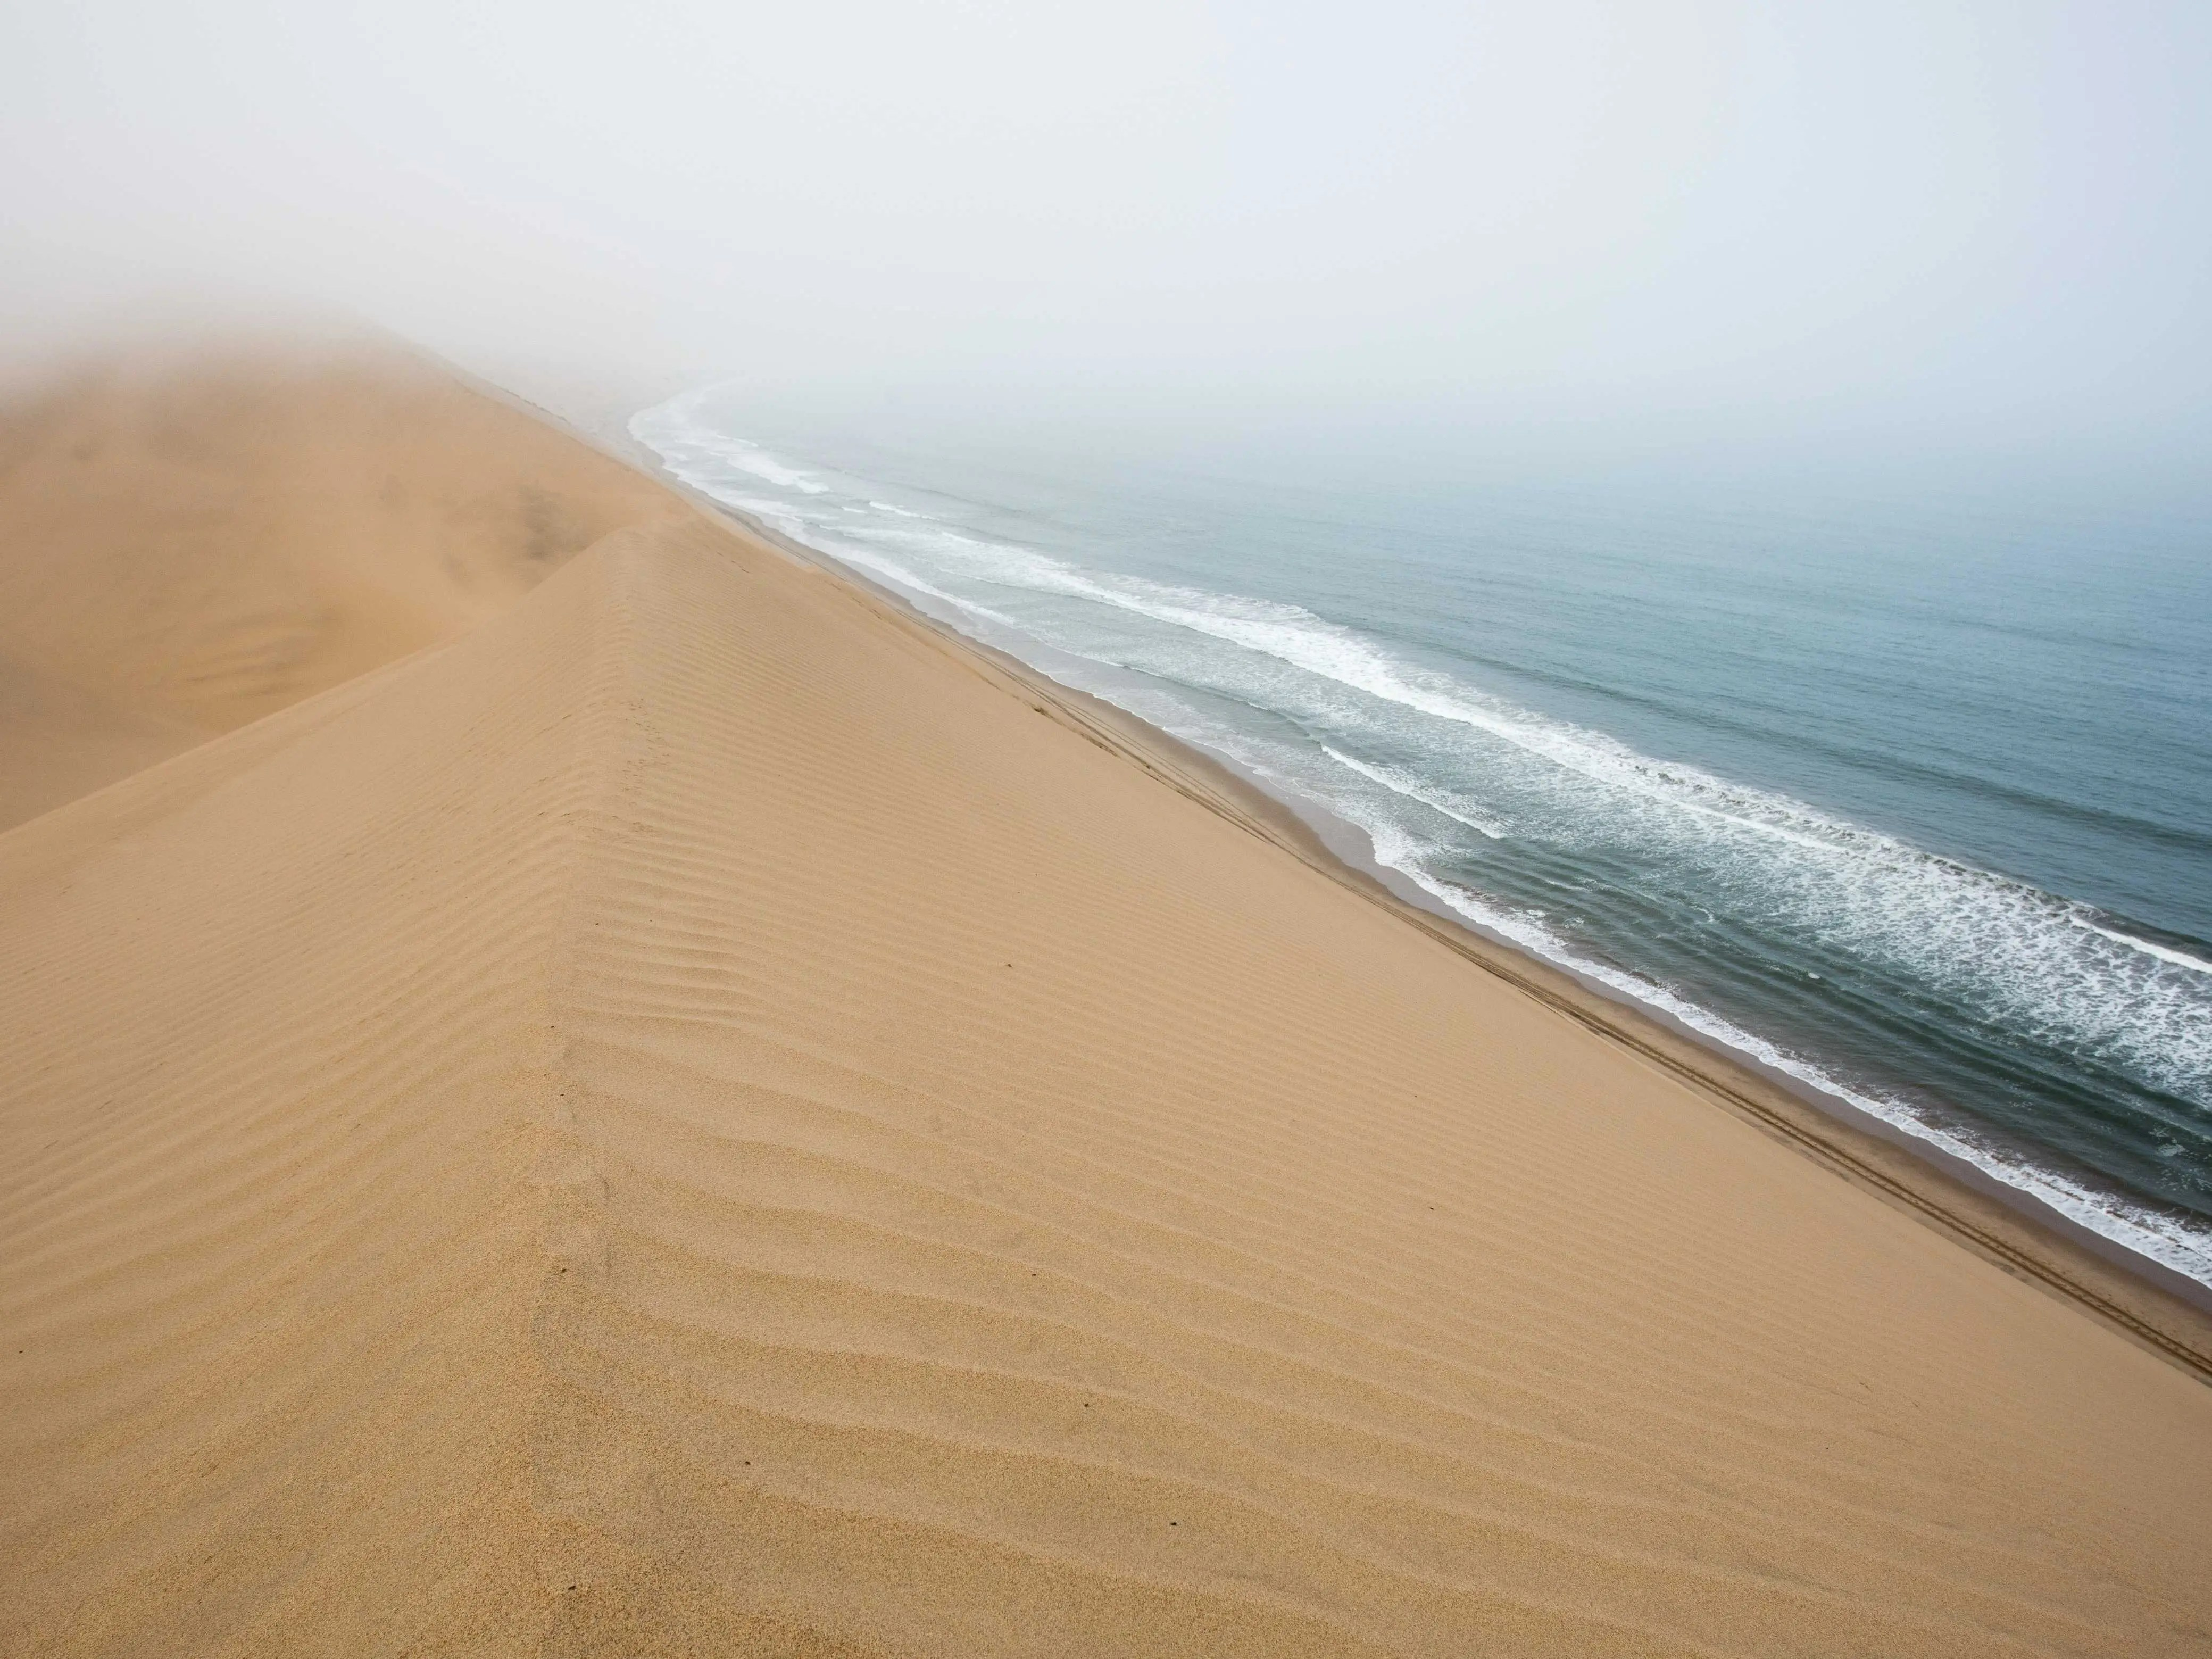 The Namib Sand Sea, located in Africa on the coast of Namibia's Namid-Naukluft Park, is the only coastal desert in the world, whose dune fields often come into contact with fog and have created a unique array of wildlife that has evolved to adapt to the environment. The landscape includes everything from rocky hills to coastal lagoons.